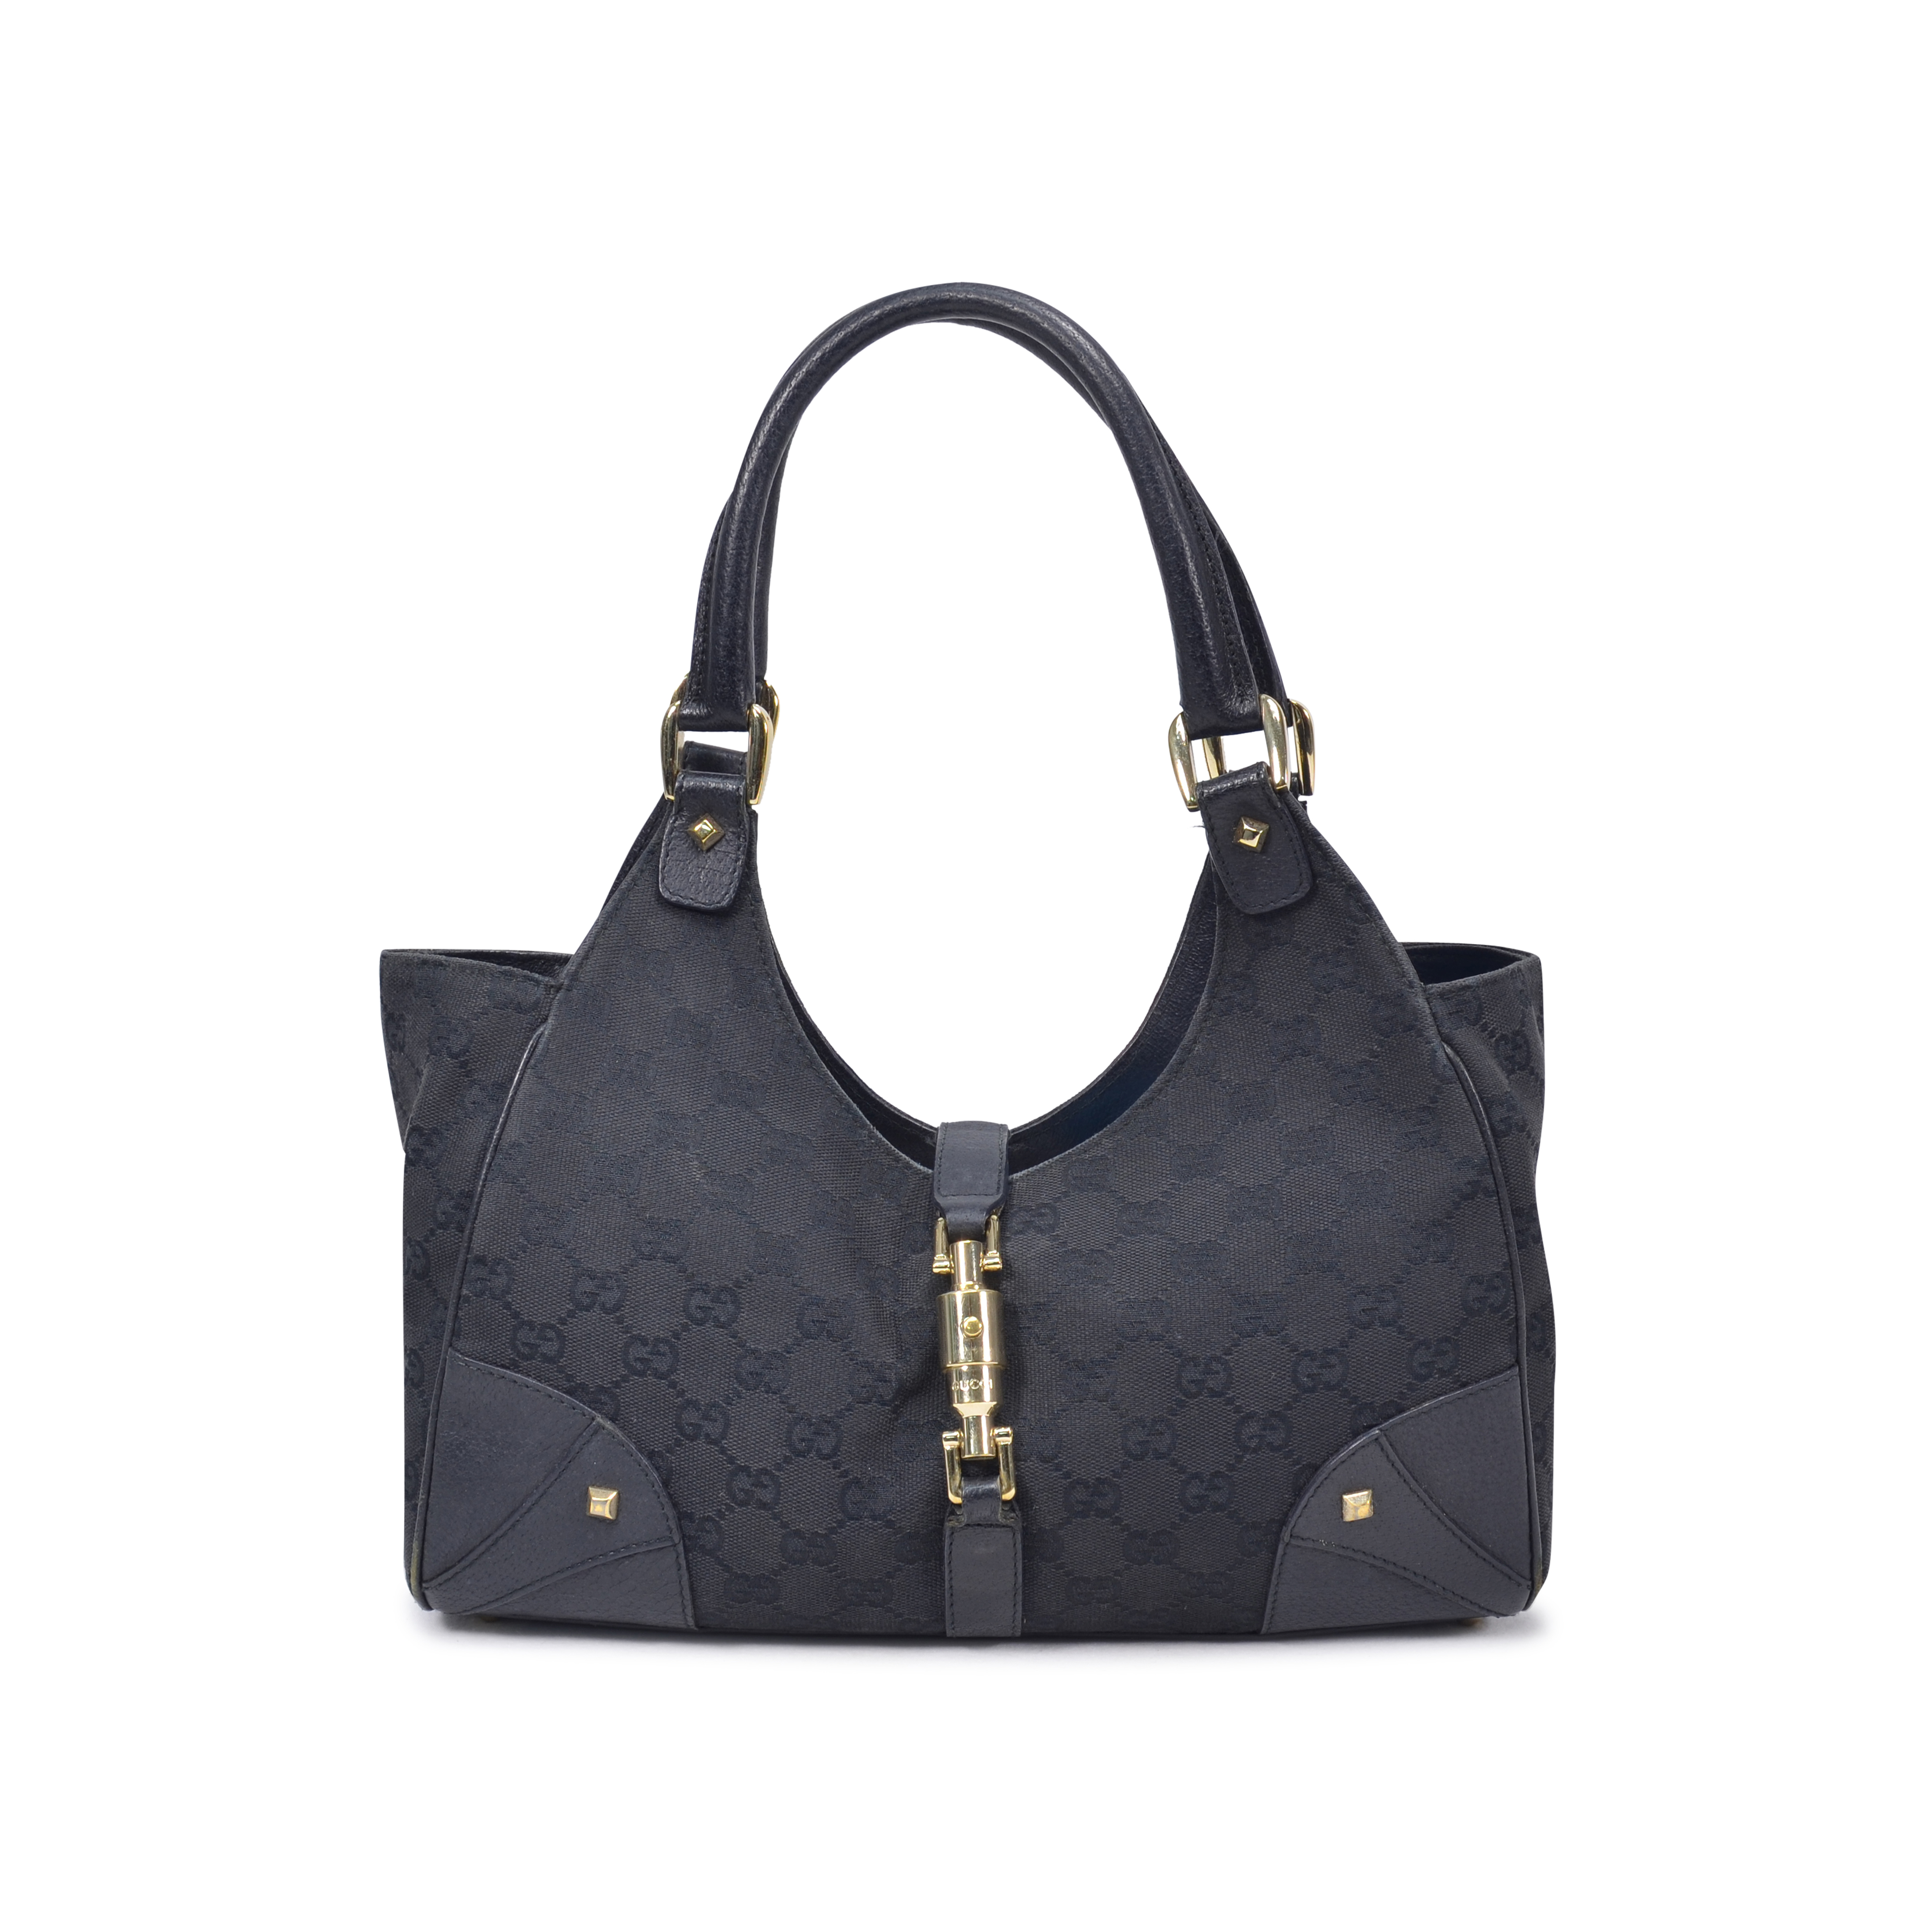 918a9b8fc3f4 Authentic Second Hand Gucci Black Monogram Canvas Shoulder Bag  (PSS-325-00001) | THE FIFTH COLLECTION